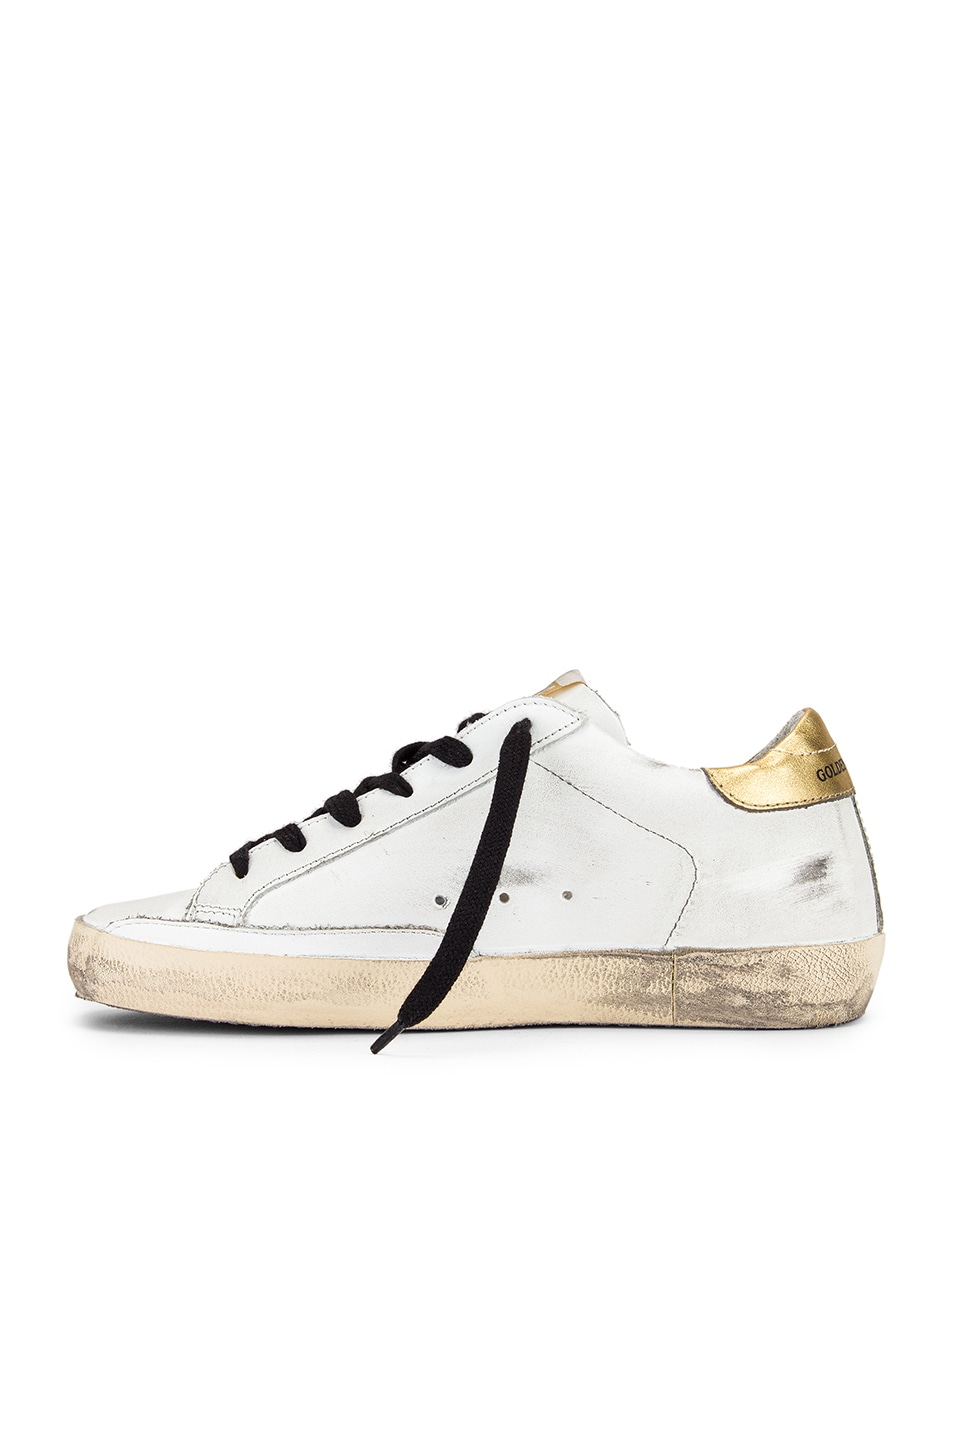 Image 5 of Golden Goose Superstar Sneaker in White Leather, Gold & Leopard